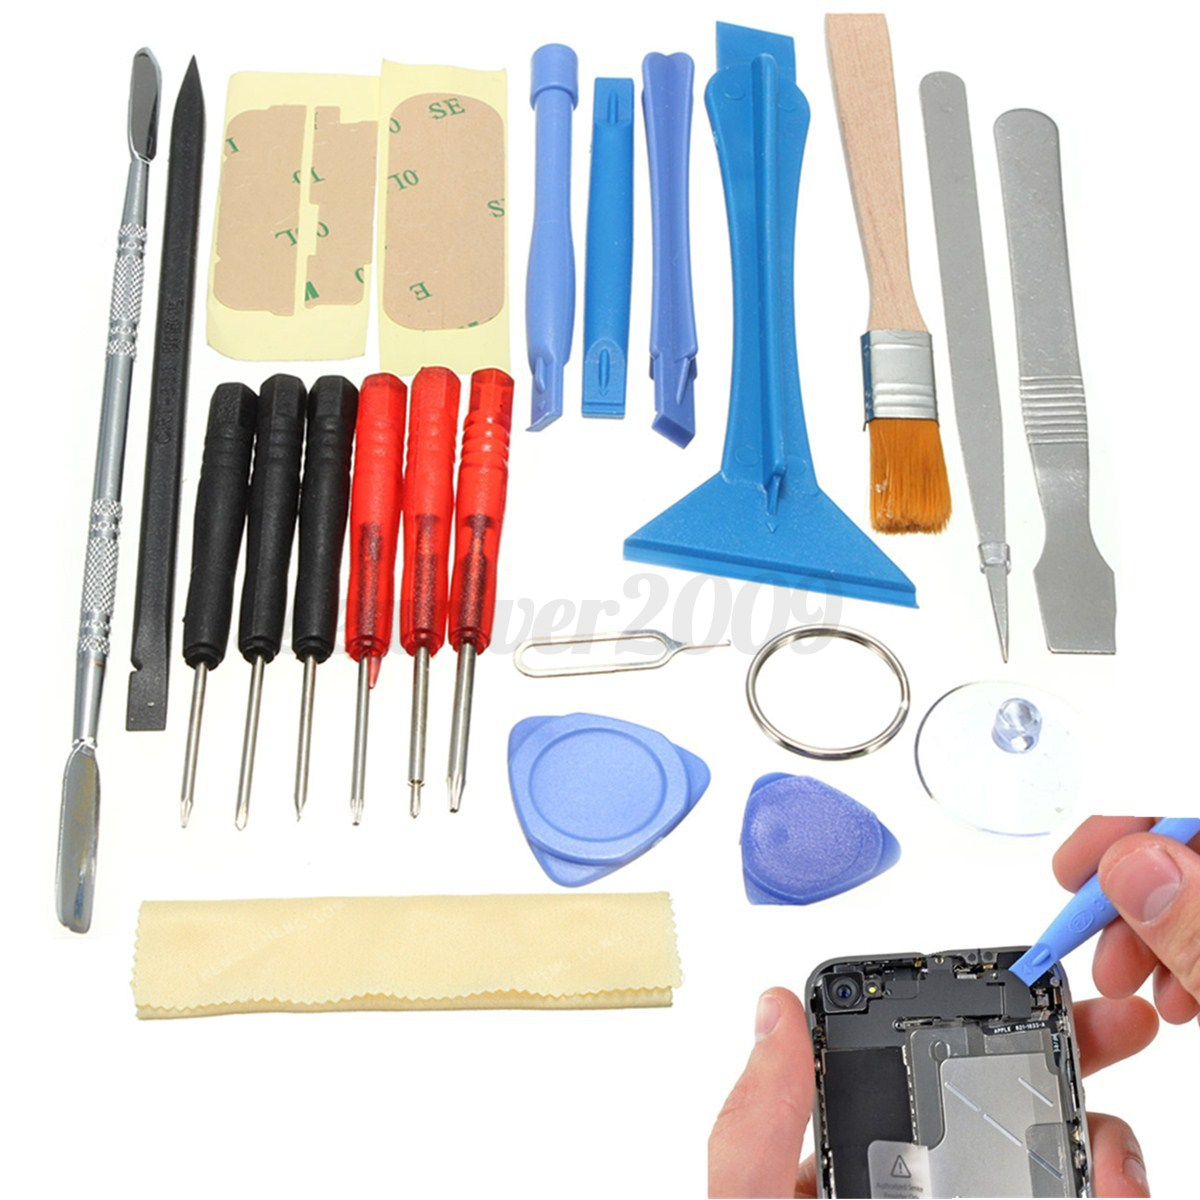 22 in 1 repair screwdriver spudger open pry tools set for iphone 6s 6 plus 5s 5 ebay. Black Bedroom Furniture Sets. Home Design Ideas